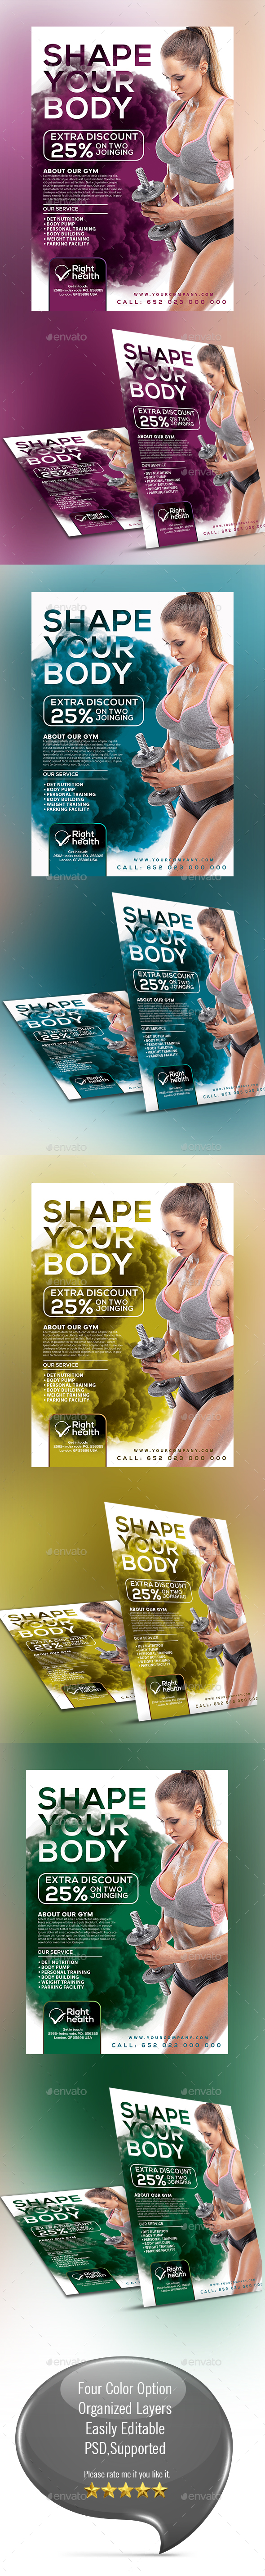 Fitness/Gym Flyer 001